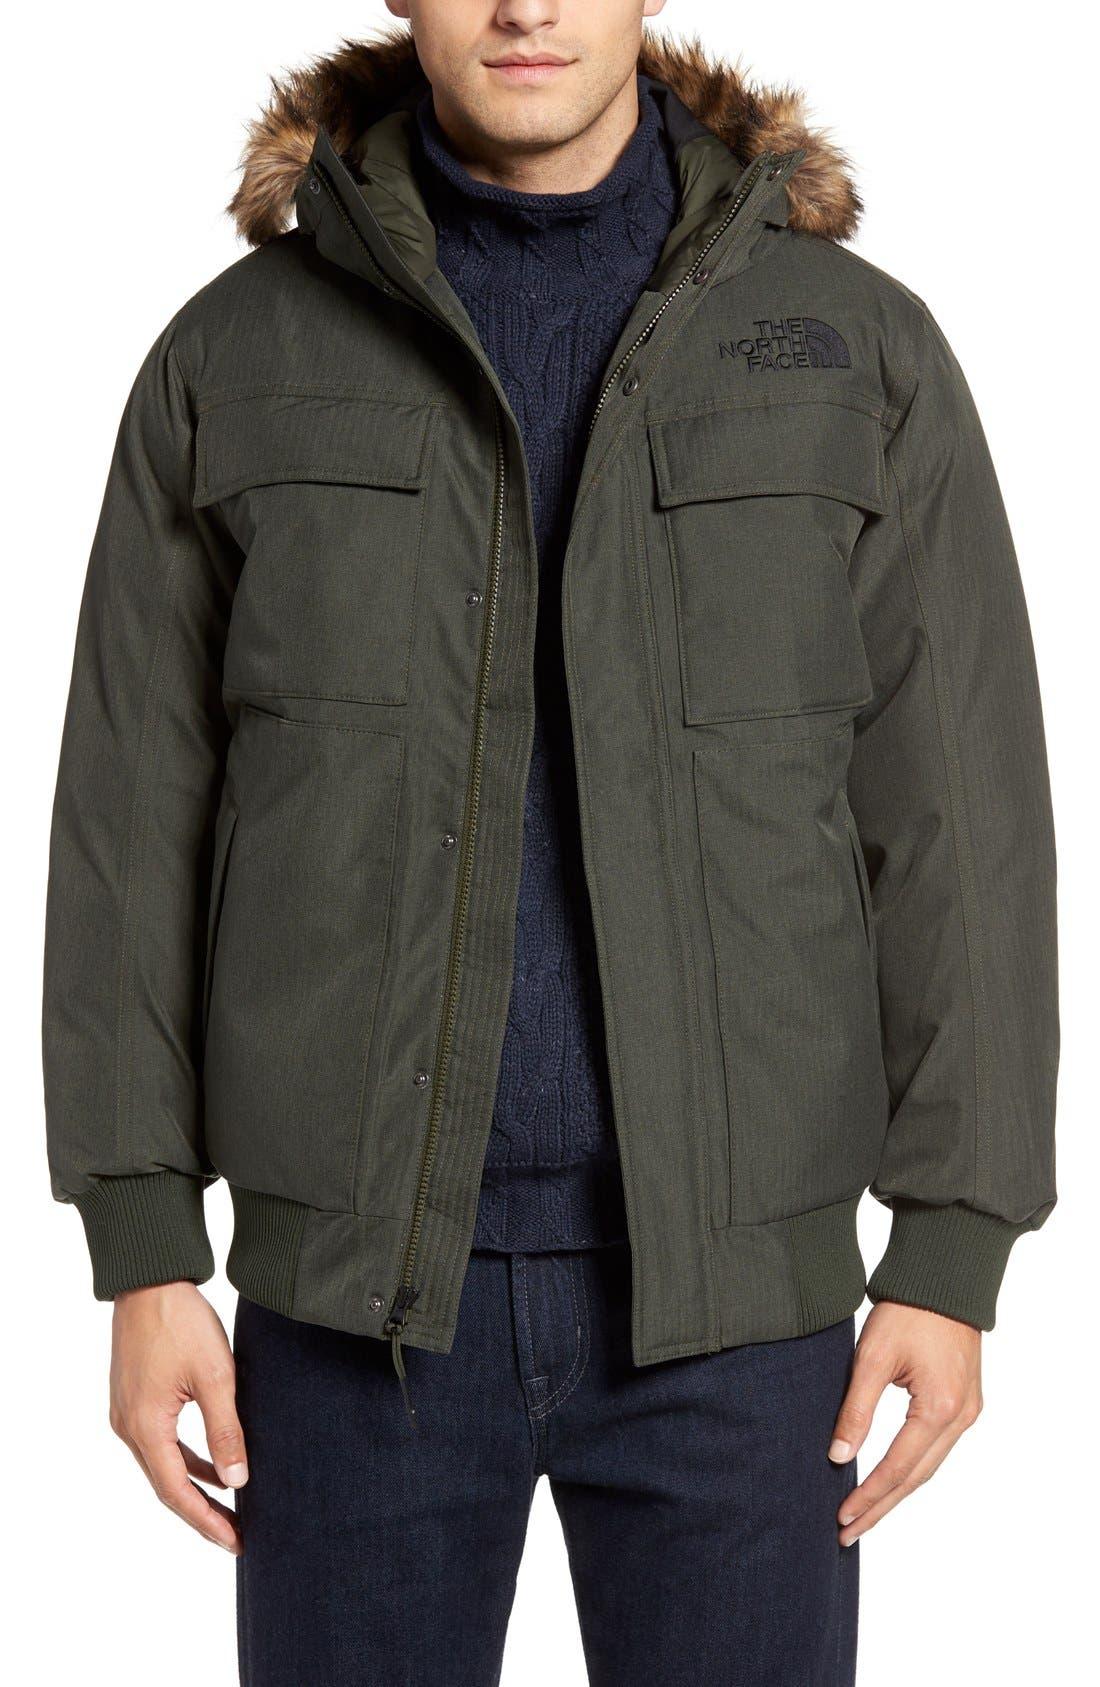 'Gotham II' Hooded Goose Down Jacket with Faux Fur Trim,                             Main thumbnail 1, color,                             Climbing Ivy Green Heather